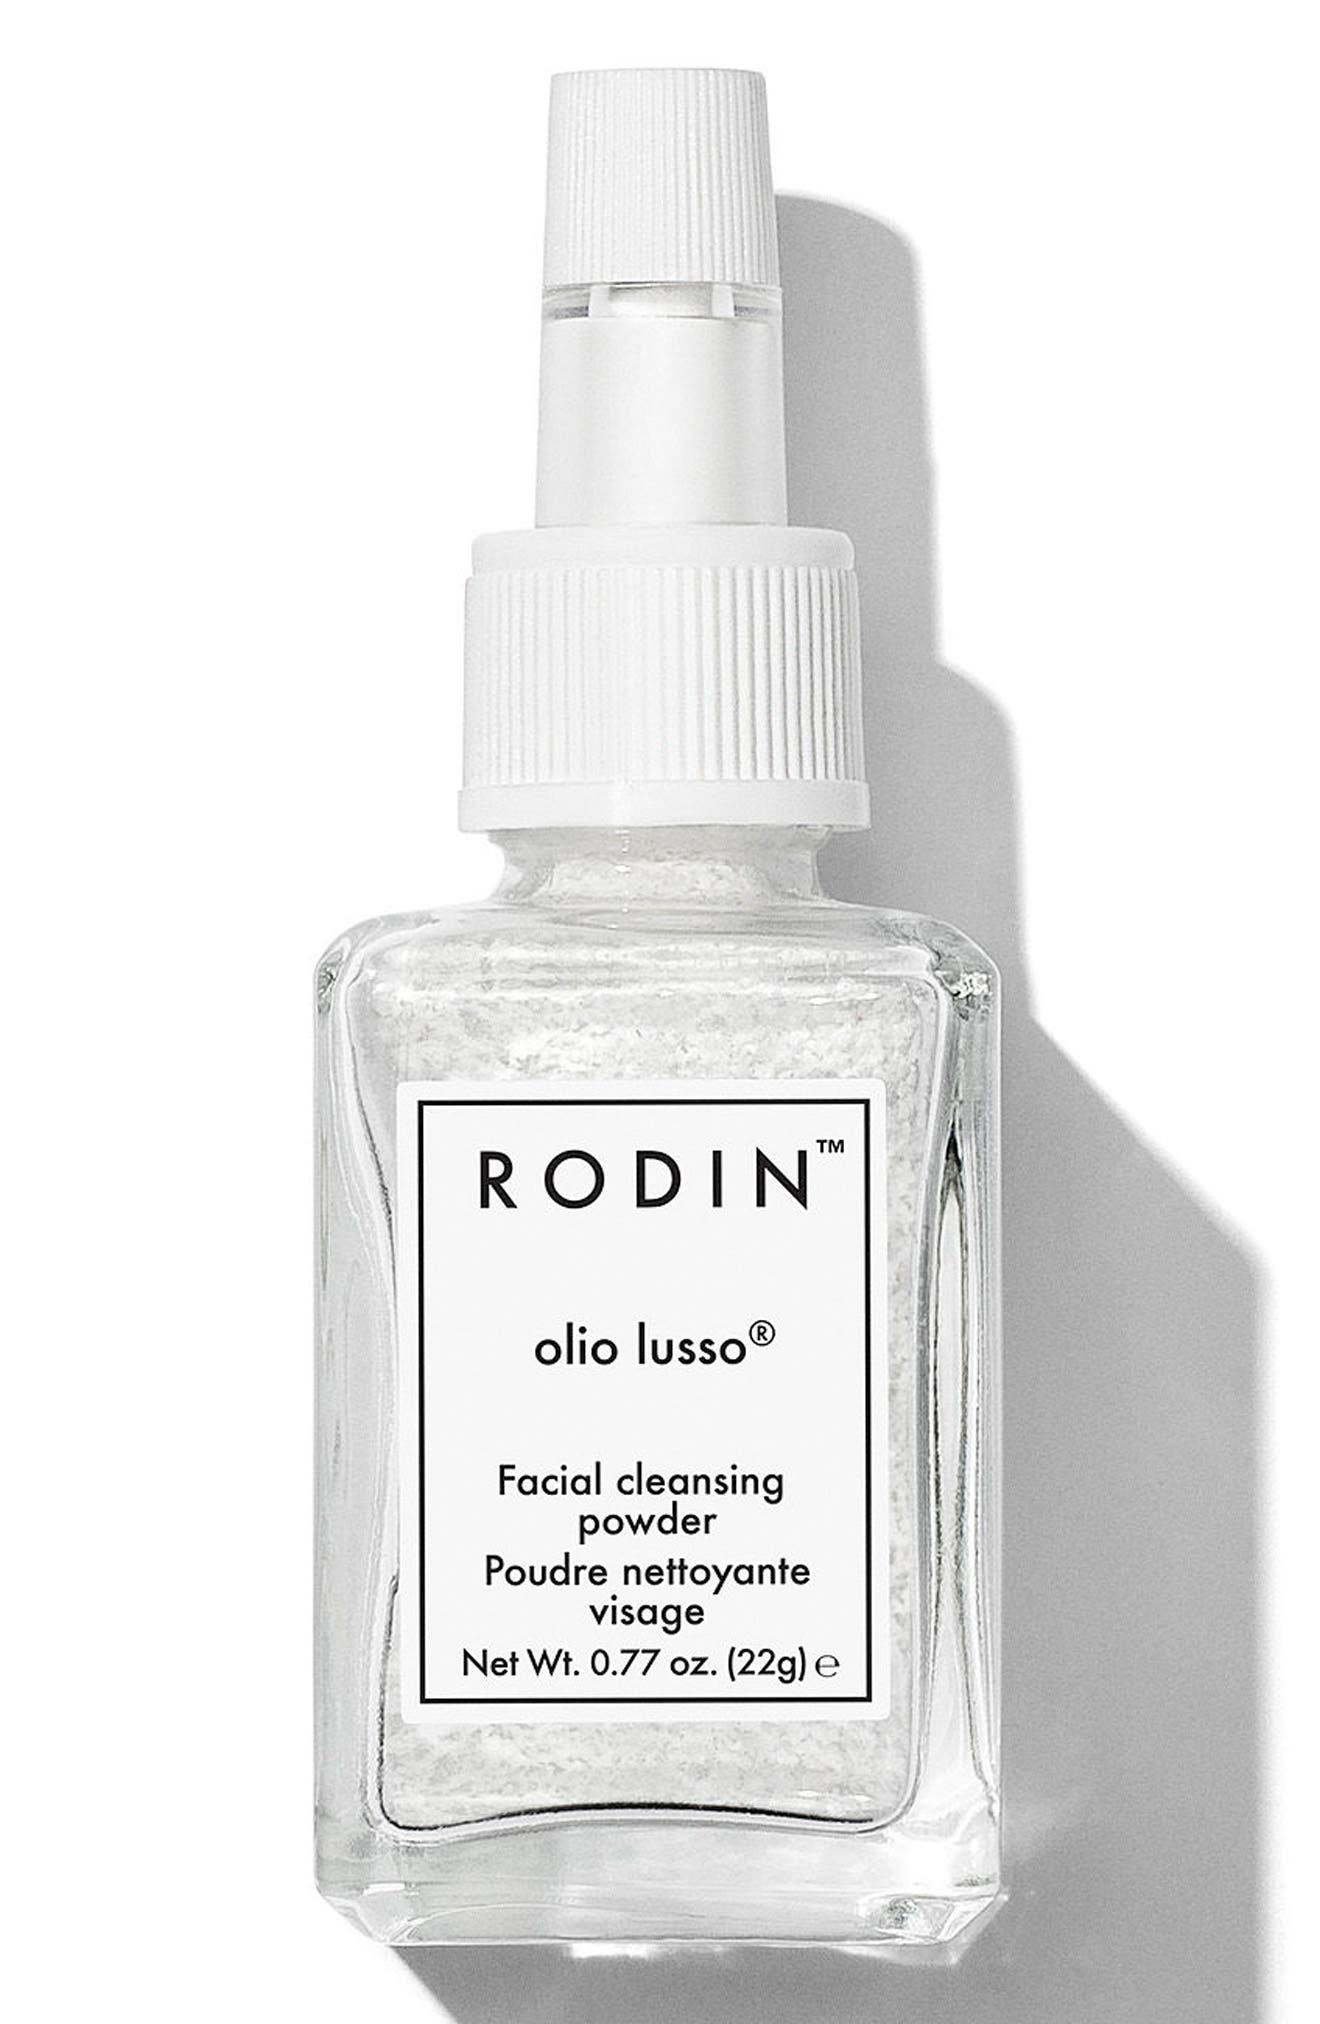 RODIN OLIO LUSSO,                             Facial Cleansing Powder,                             Main thumbnail 1, color,                             NO COLOR